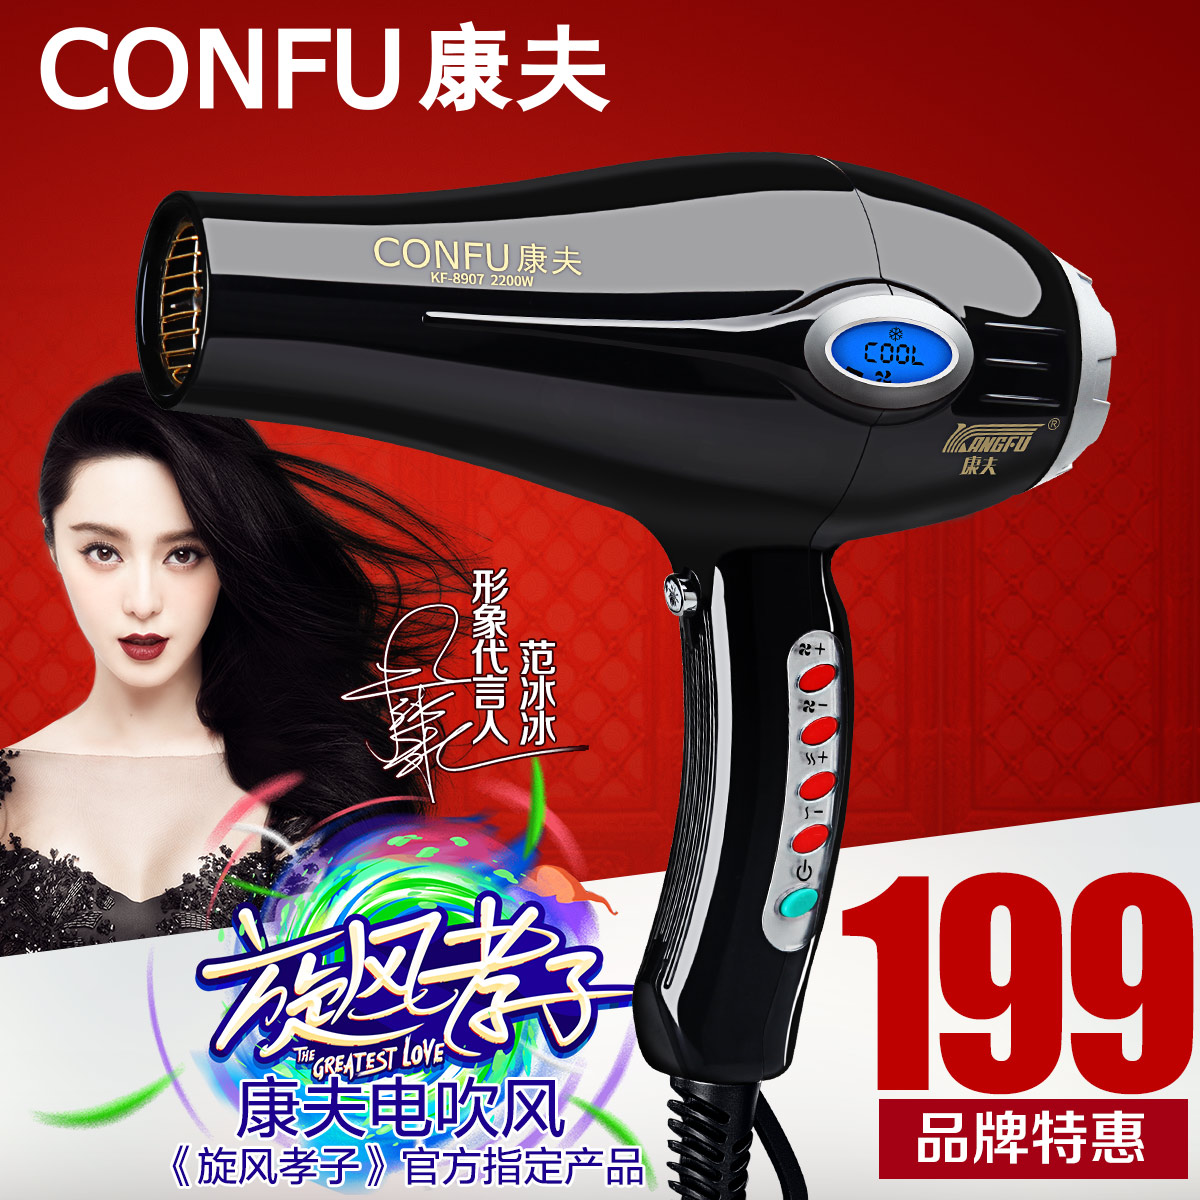 Genuine yasuo KF-8907 yasuo professional hair dryer power mute hair dryer hair gallery barber shop dedicated